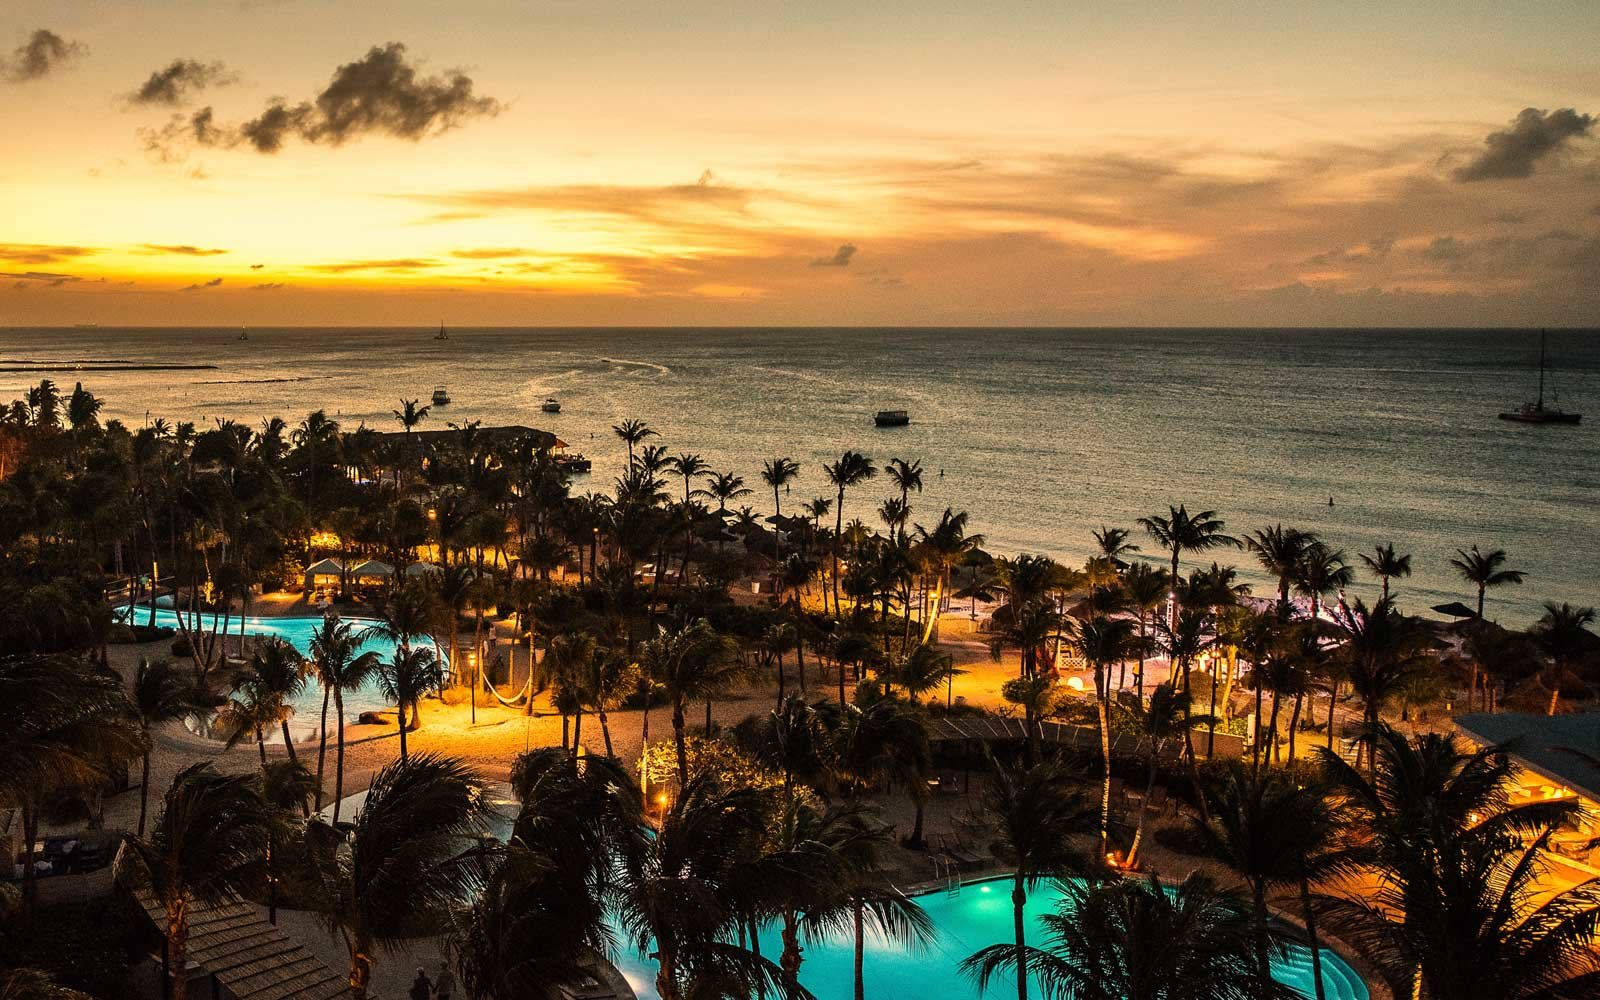 Vacation Travel Package Deals Save 33% Off Stays At Hilton Aruba Caribbean Resort